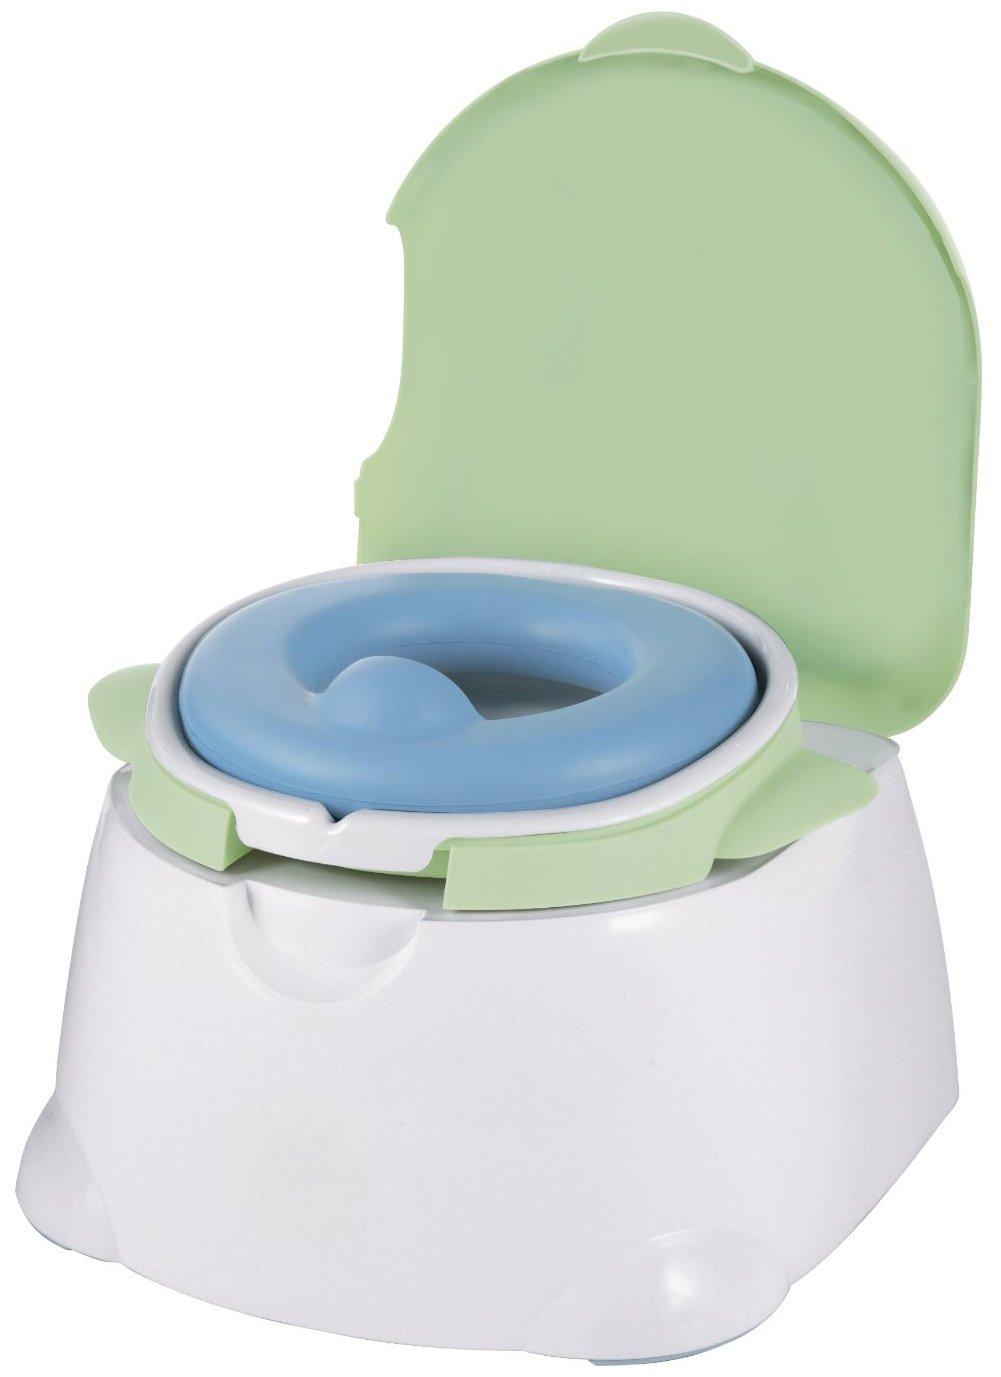 Potty Chair Selection Tips  A Potty Seat for Everyone